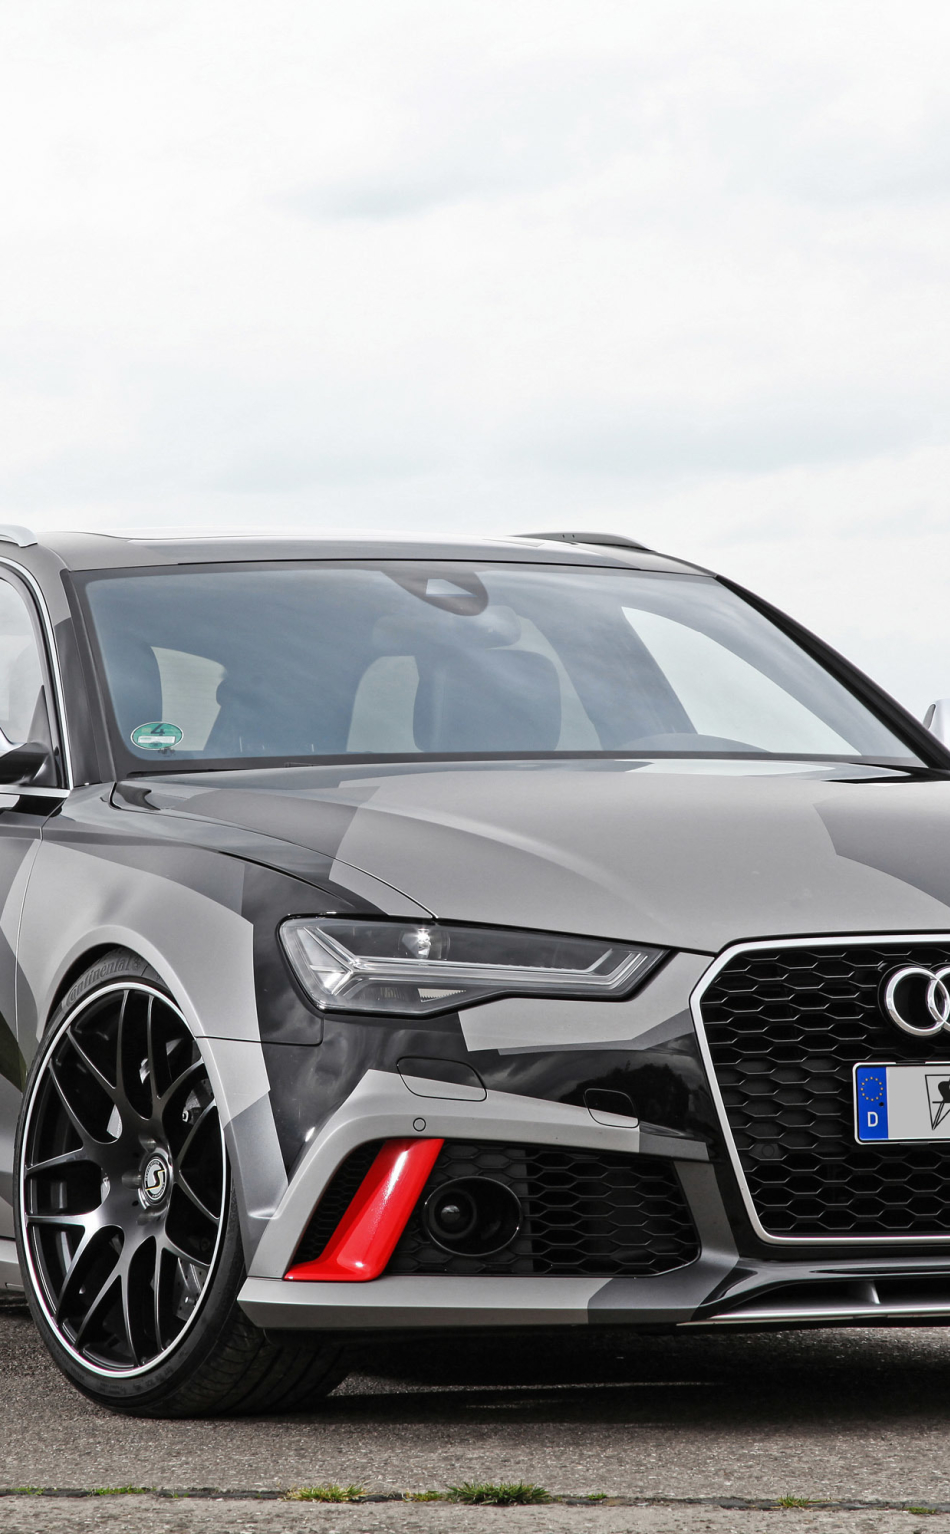 Audi Rs6 Wallpaper Iphone X Walljdi Org